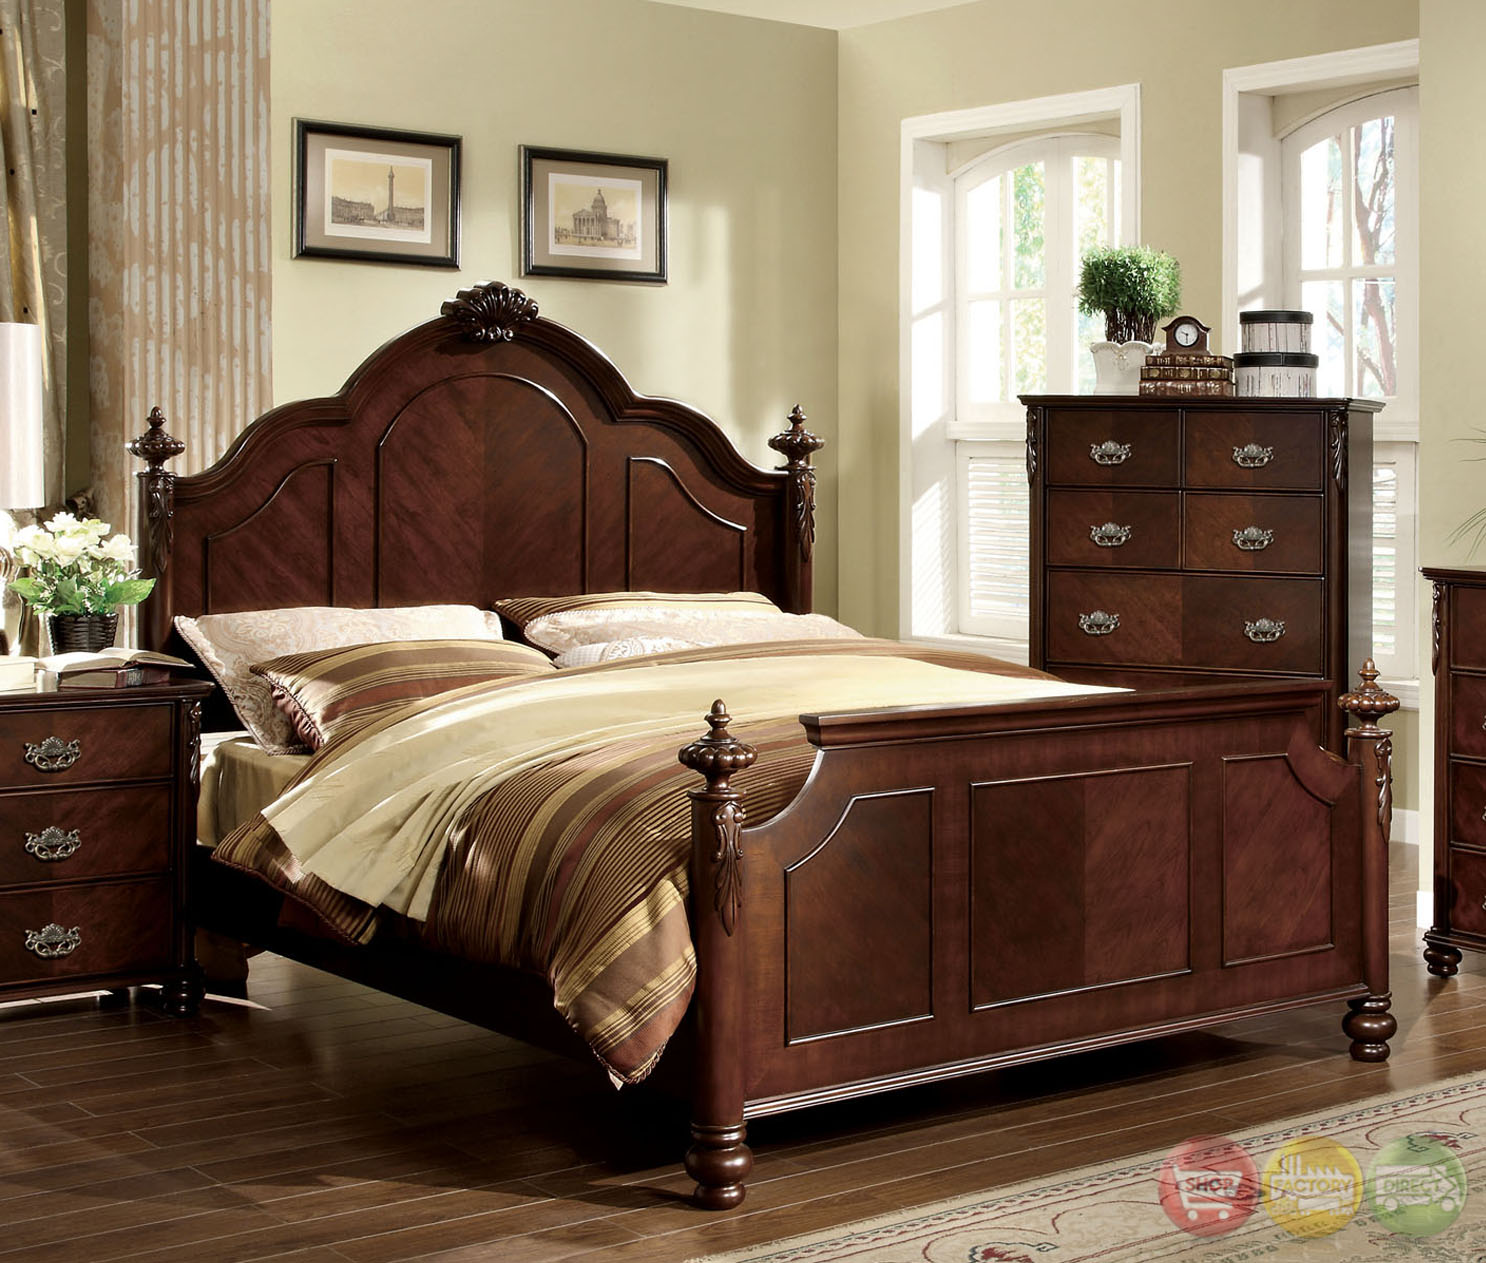 Roseland Traditional Brown Cherry Bedroom Set With Ornamental Headboard And Footboard Cm7269